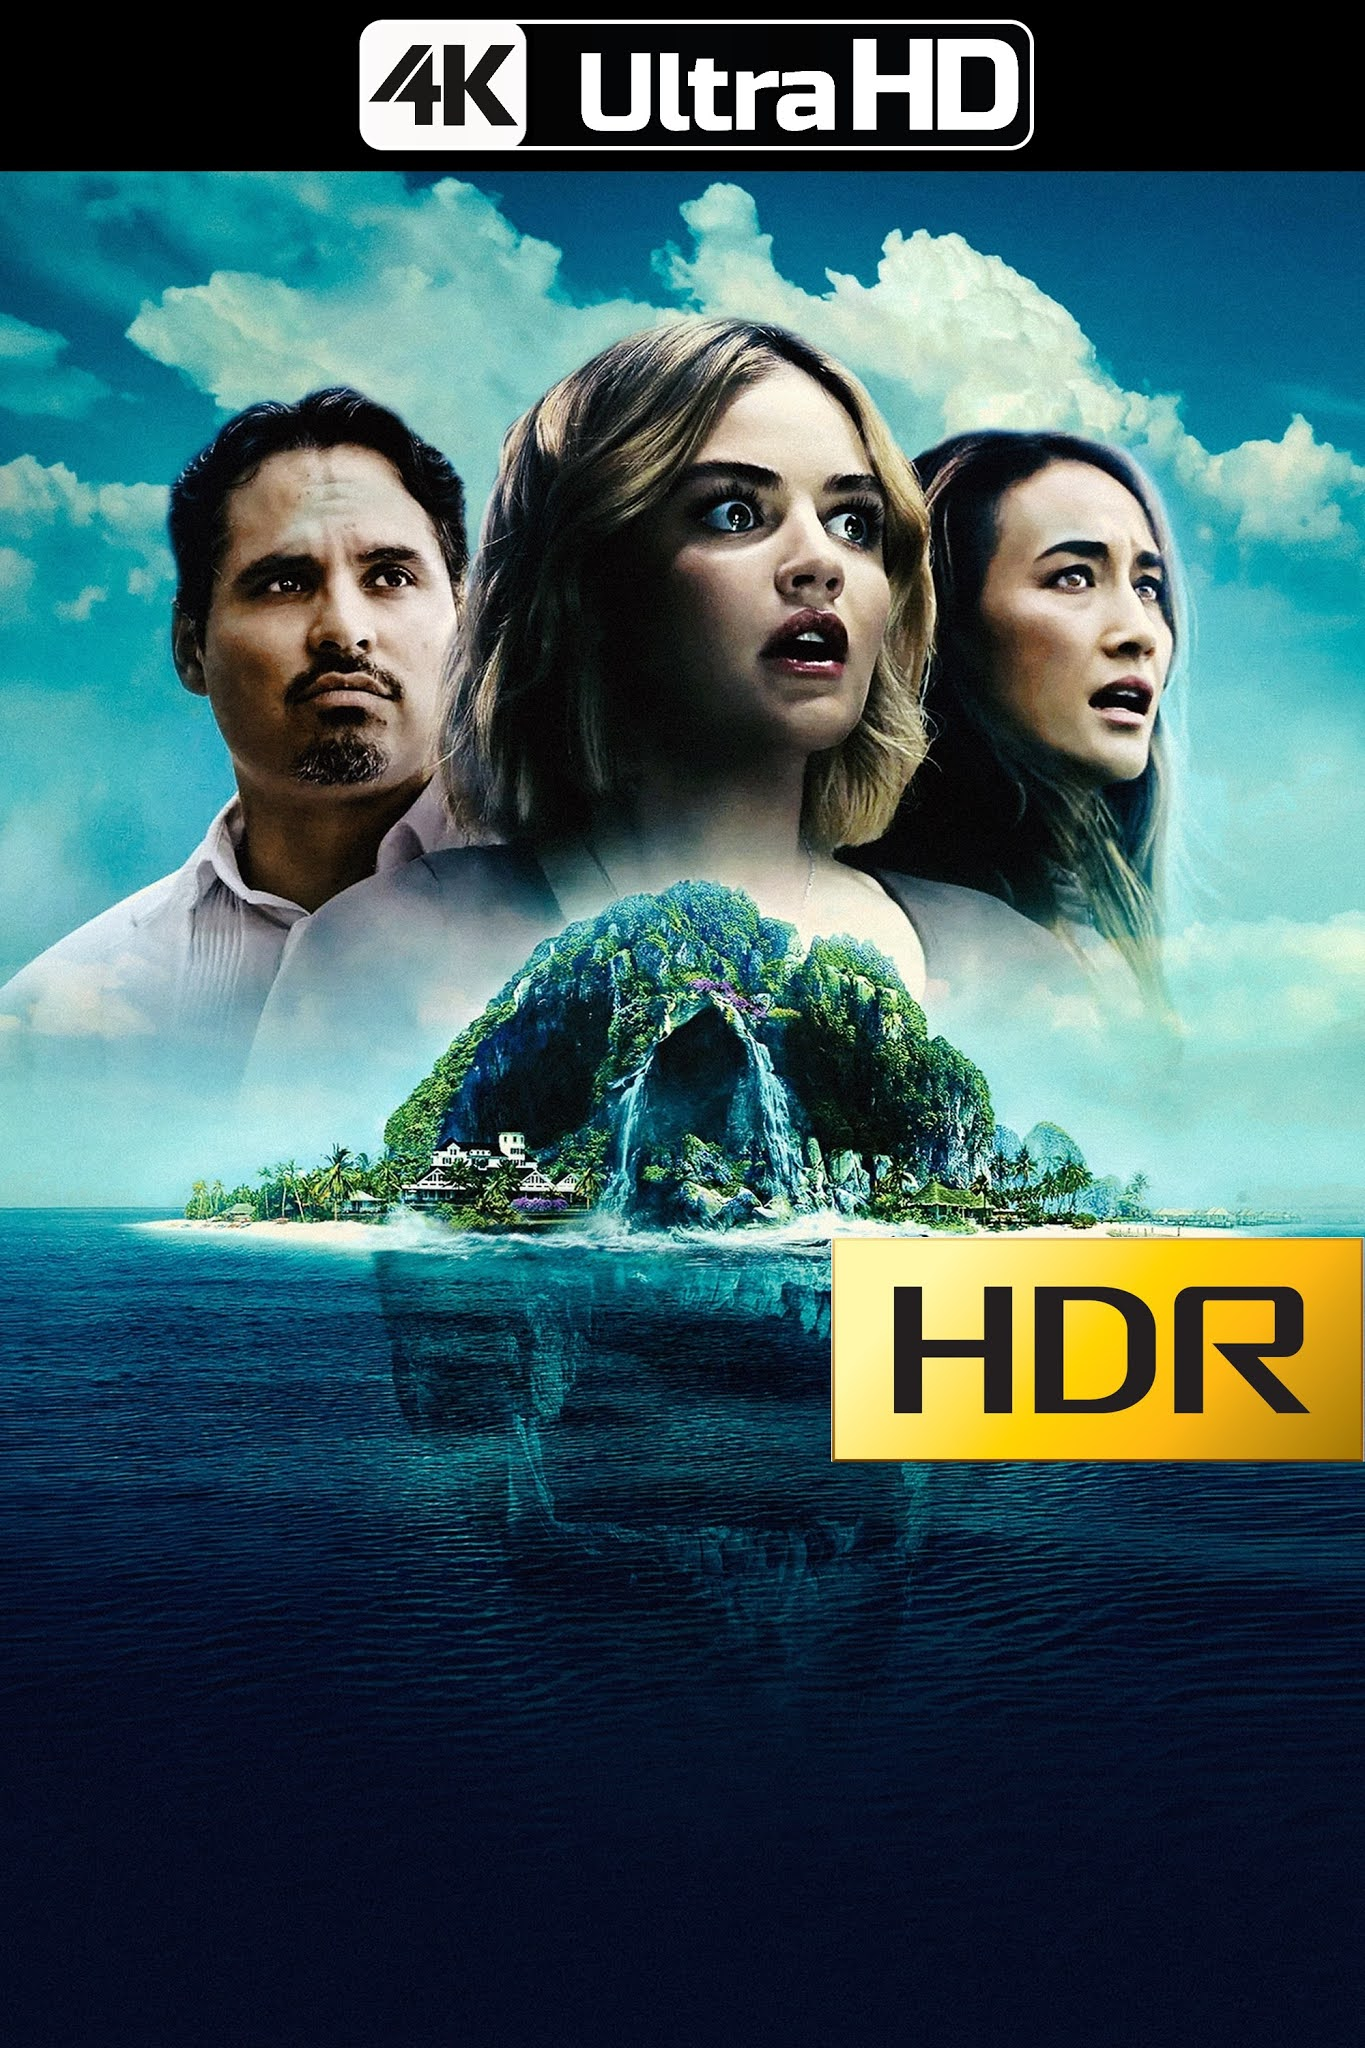 La Isla de la Fantasia (2020) UNRATED 4K UHD HDR Web-DL Latino